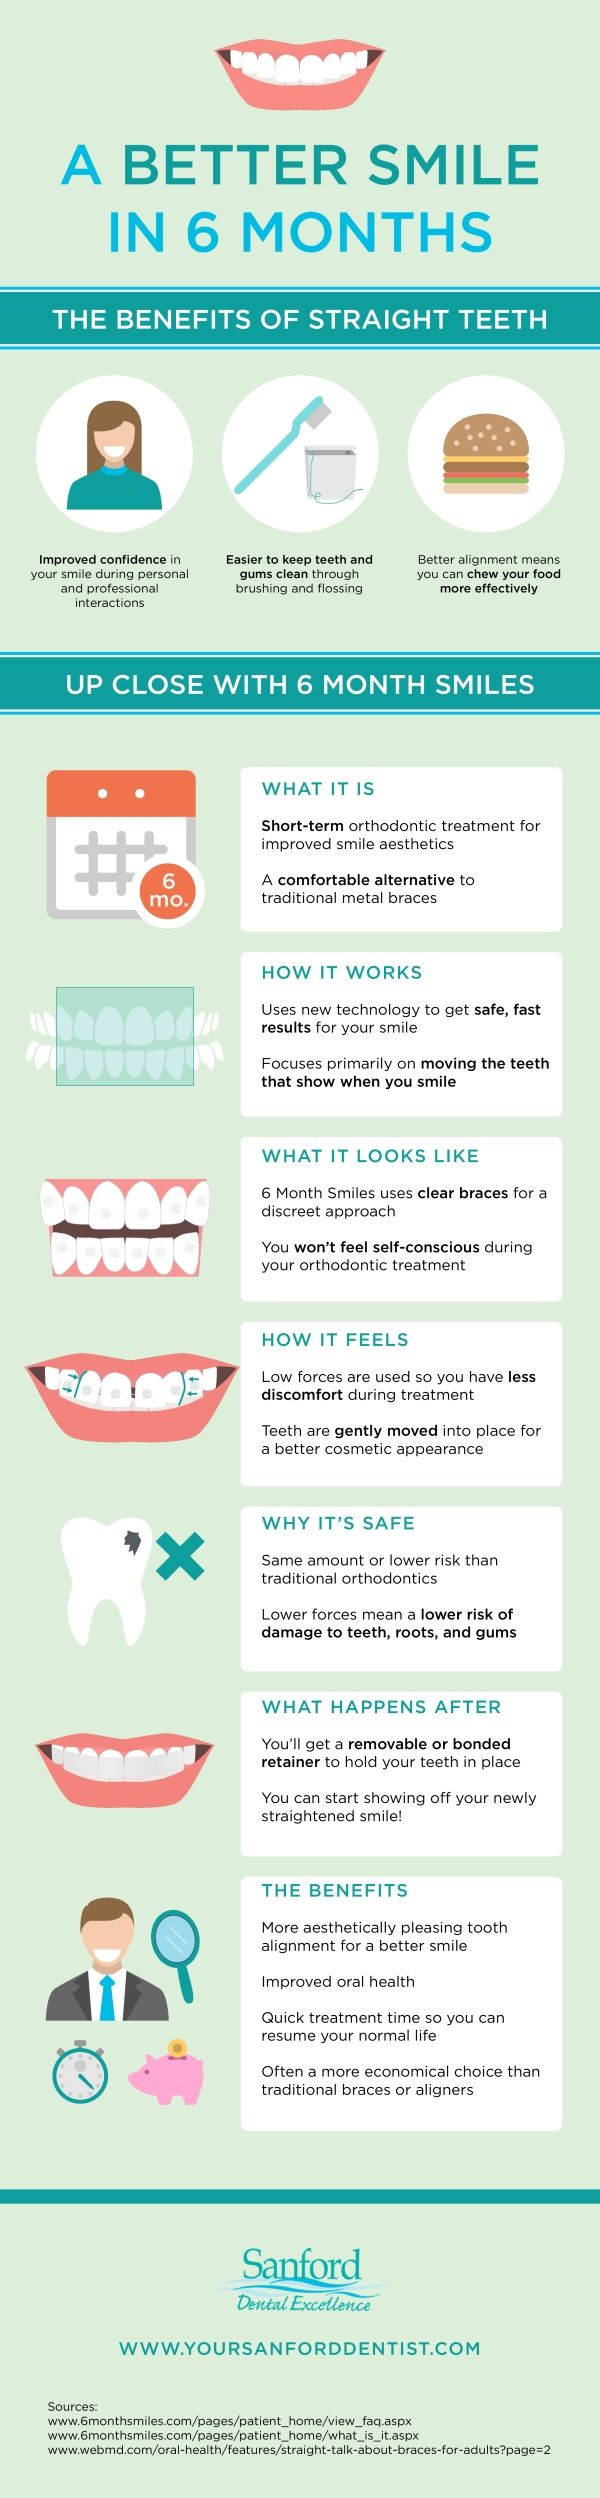 A straighter smile can give you more confidence and make it easier to maintain good dental hygiene! Take a look at this infographic about sedation dentistry in Sanford to see how 6 Month Smiles can help you get a straight smile quickly and easily.